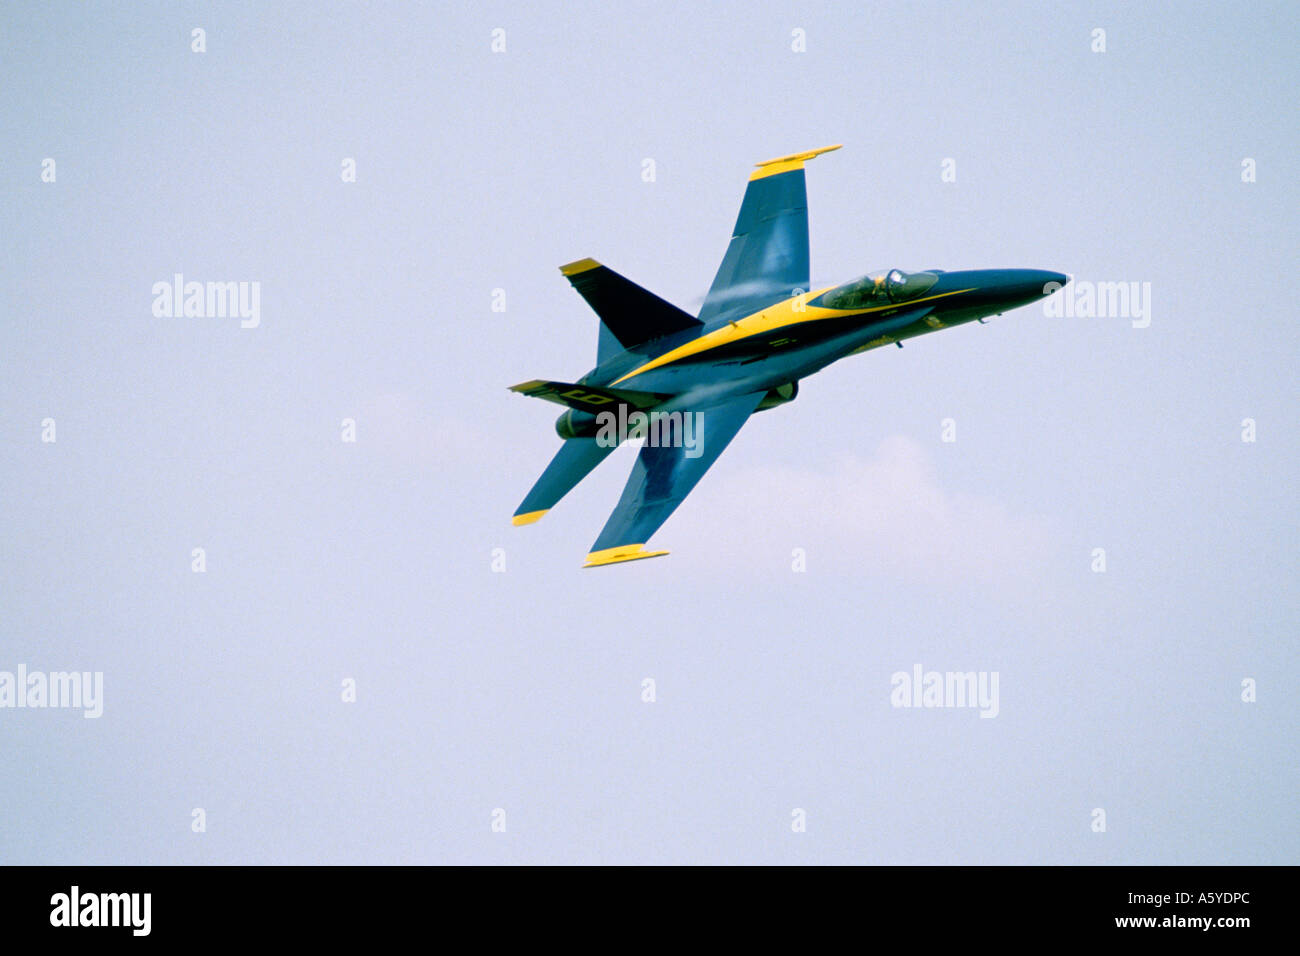 A Blue Angel f-18 supersonic jet. - Stock Image